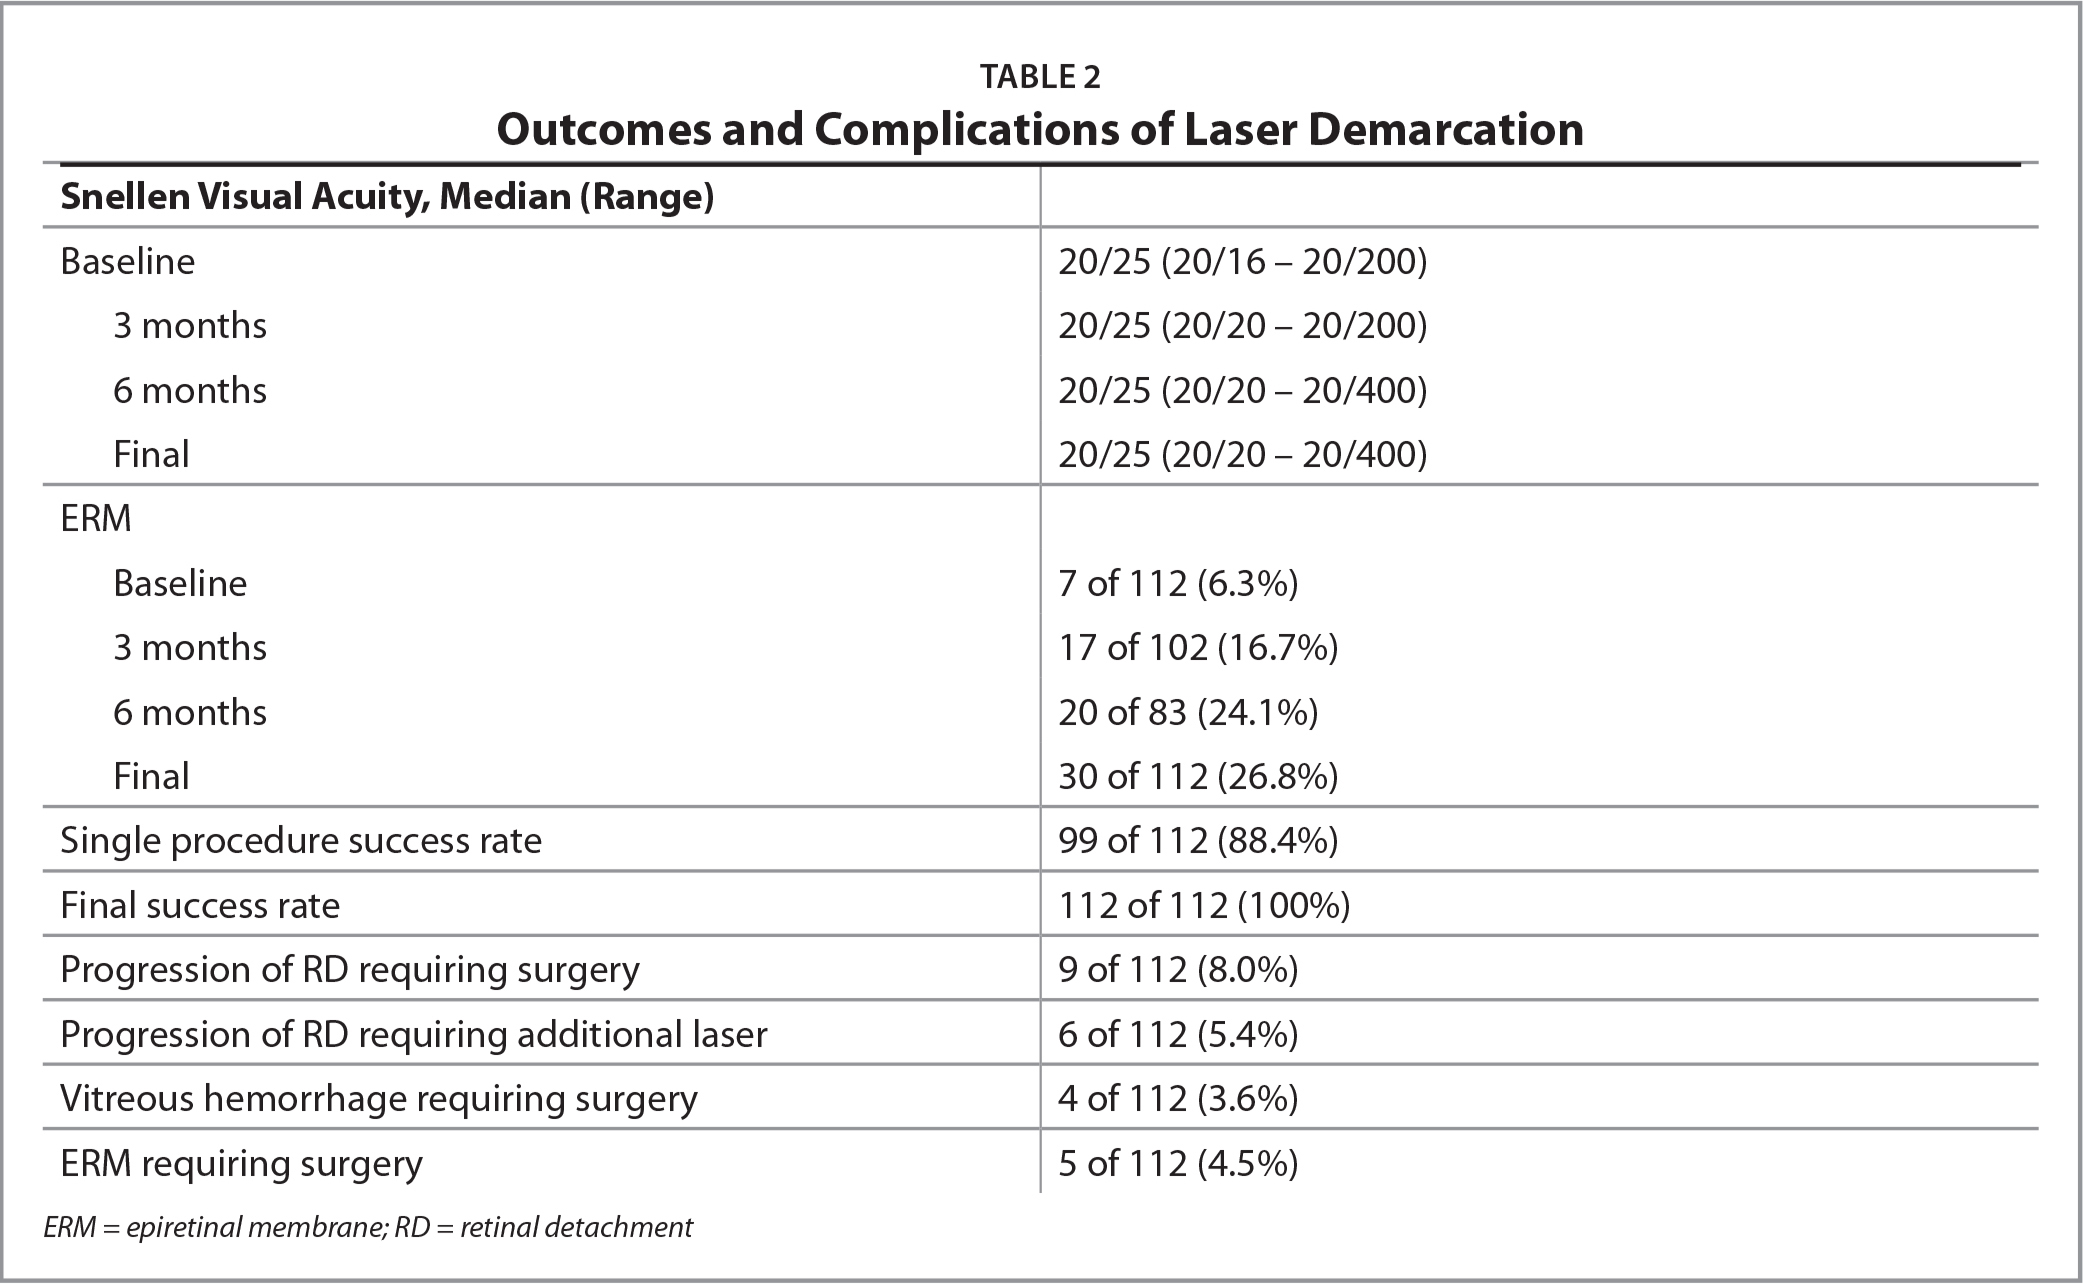 Outcomes and Complications of Laser Demarcation